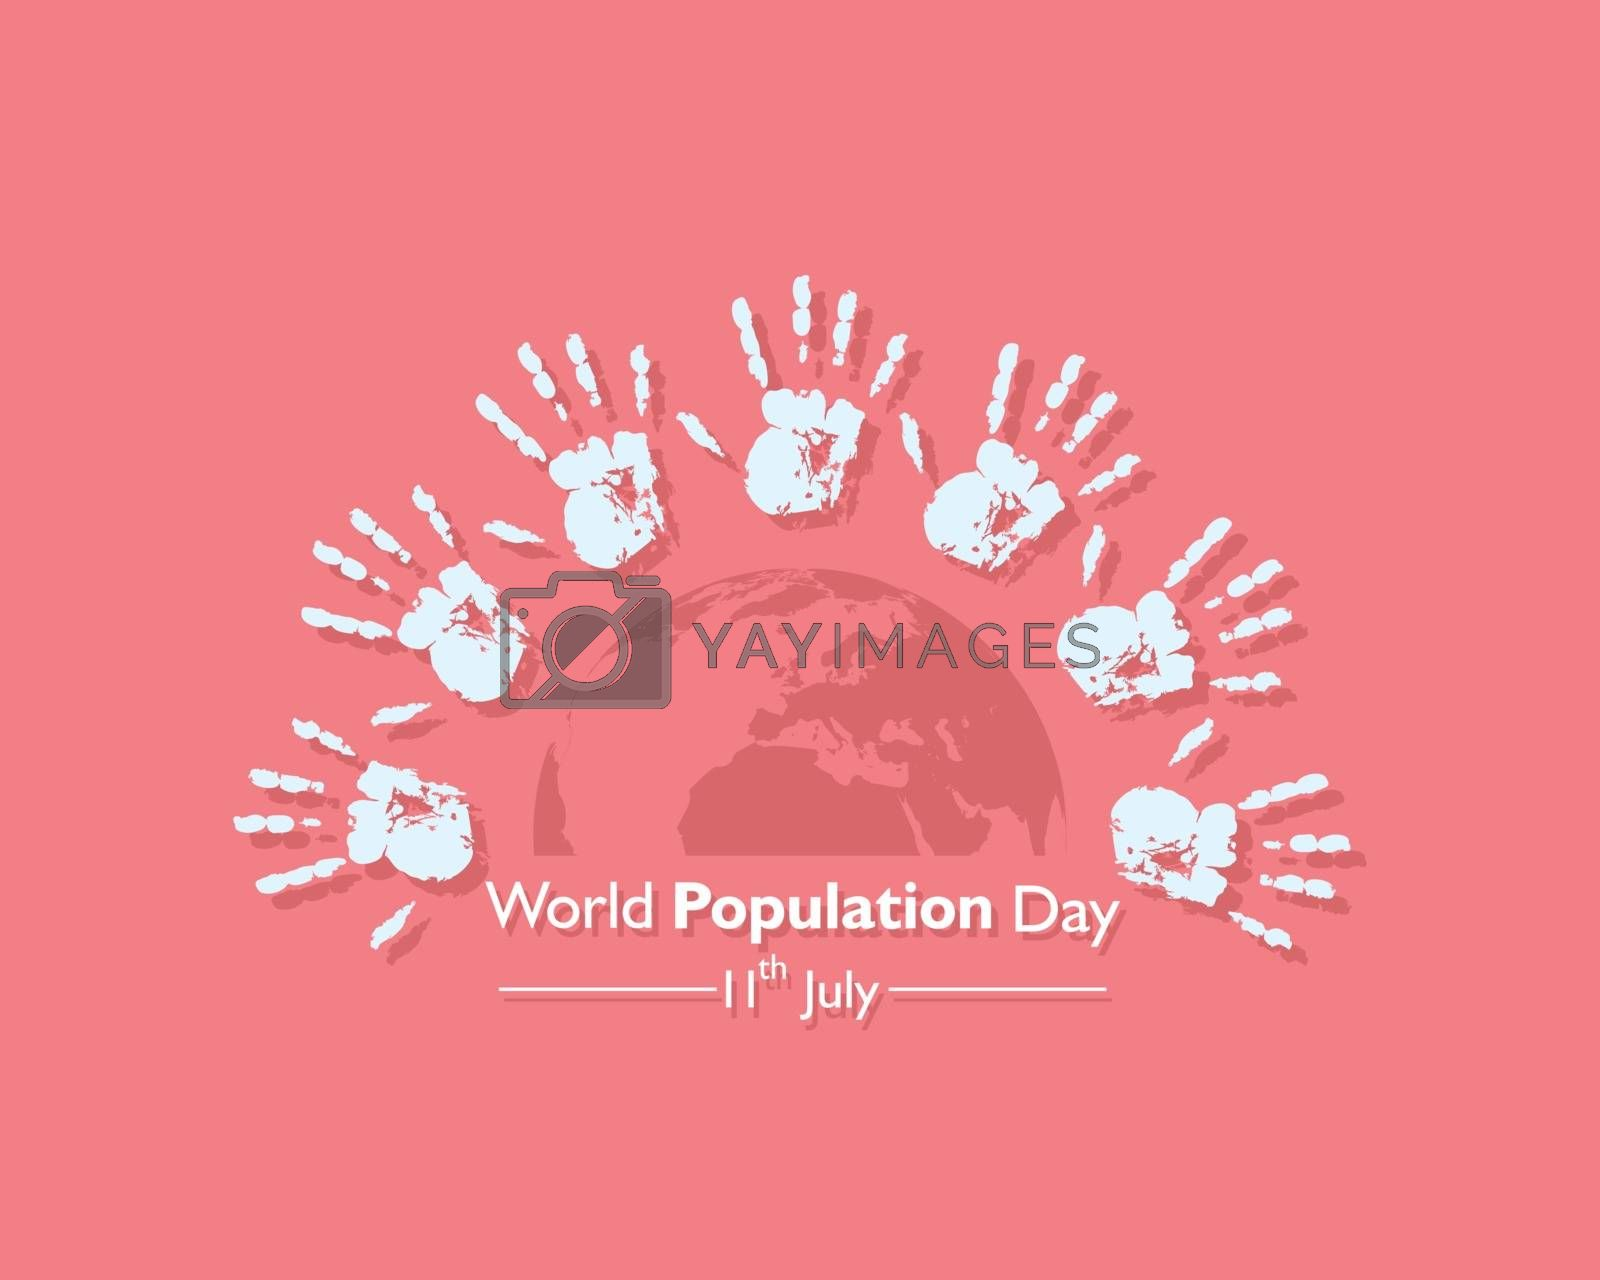 Illustration of World Population Day observed on 11th July